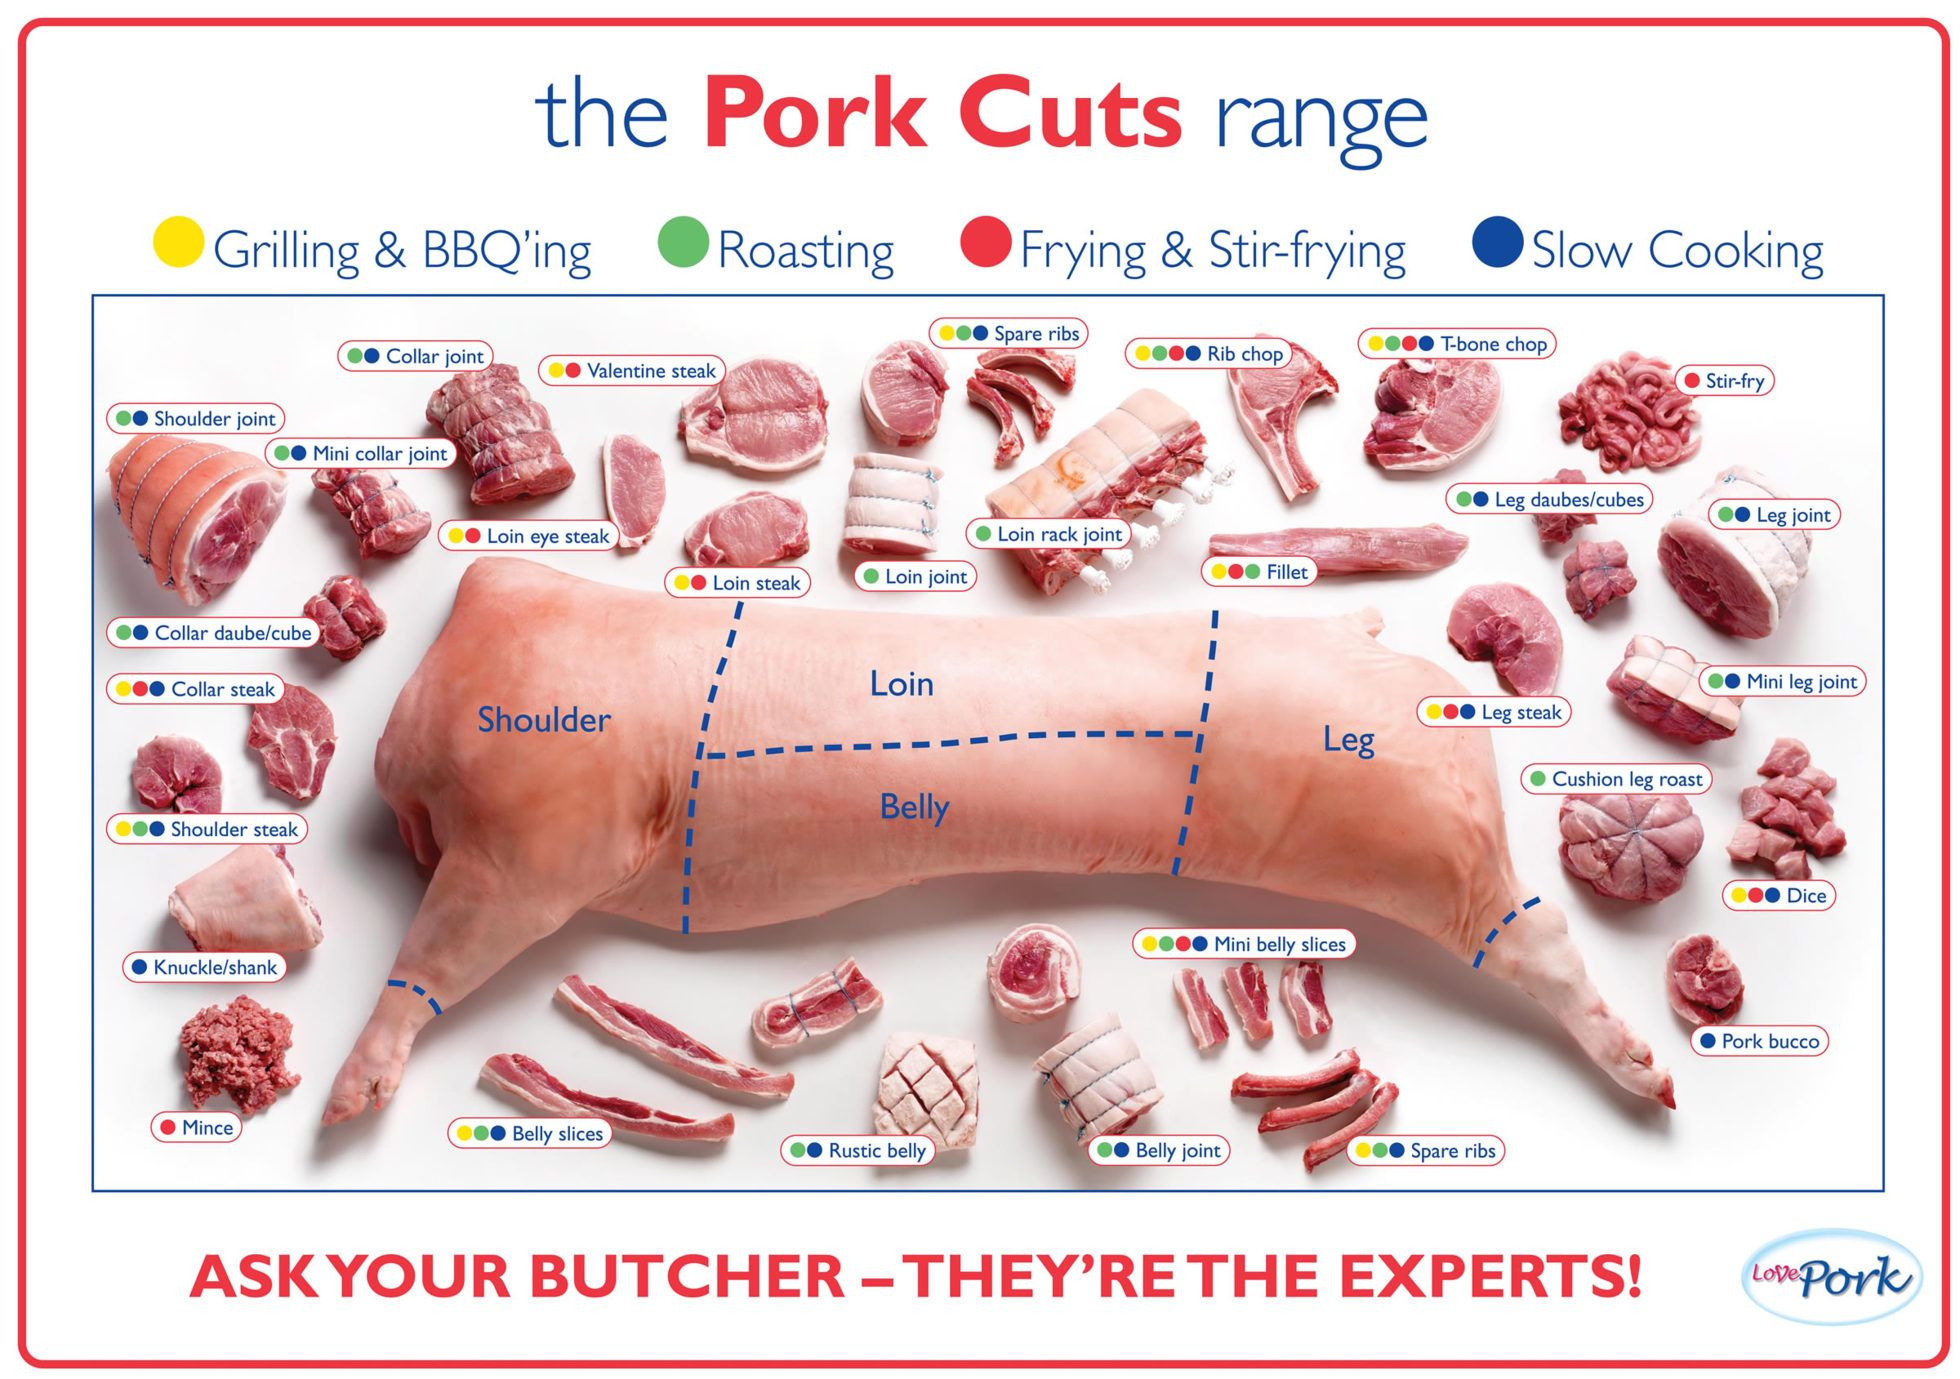 medium resolution of whats in half a pig share 23 pork chops 2 roasts 1 ham 8 lbs of spare ribs pig diagram spare ribs diagram